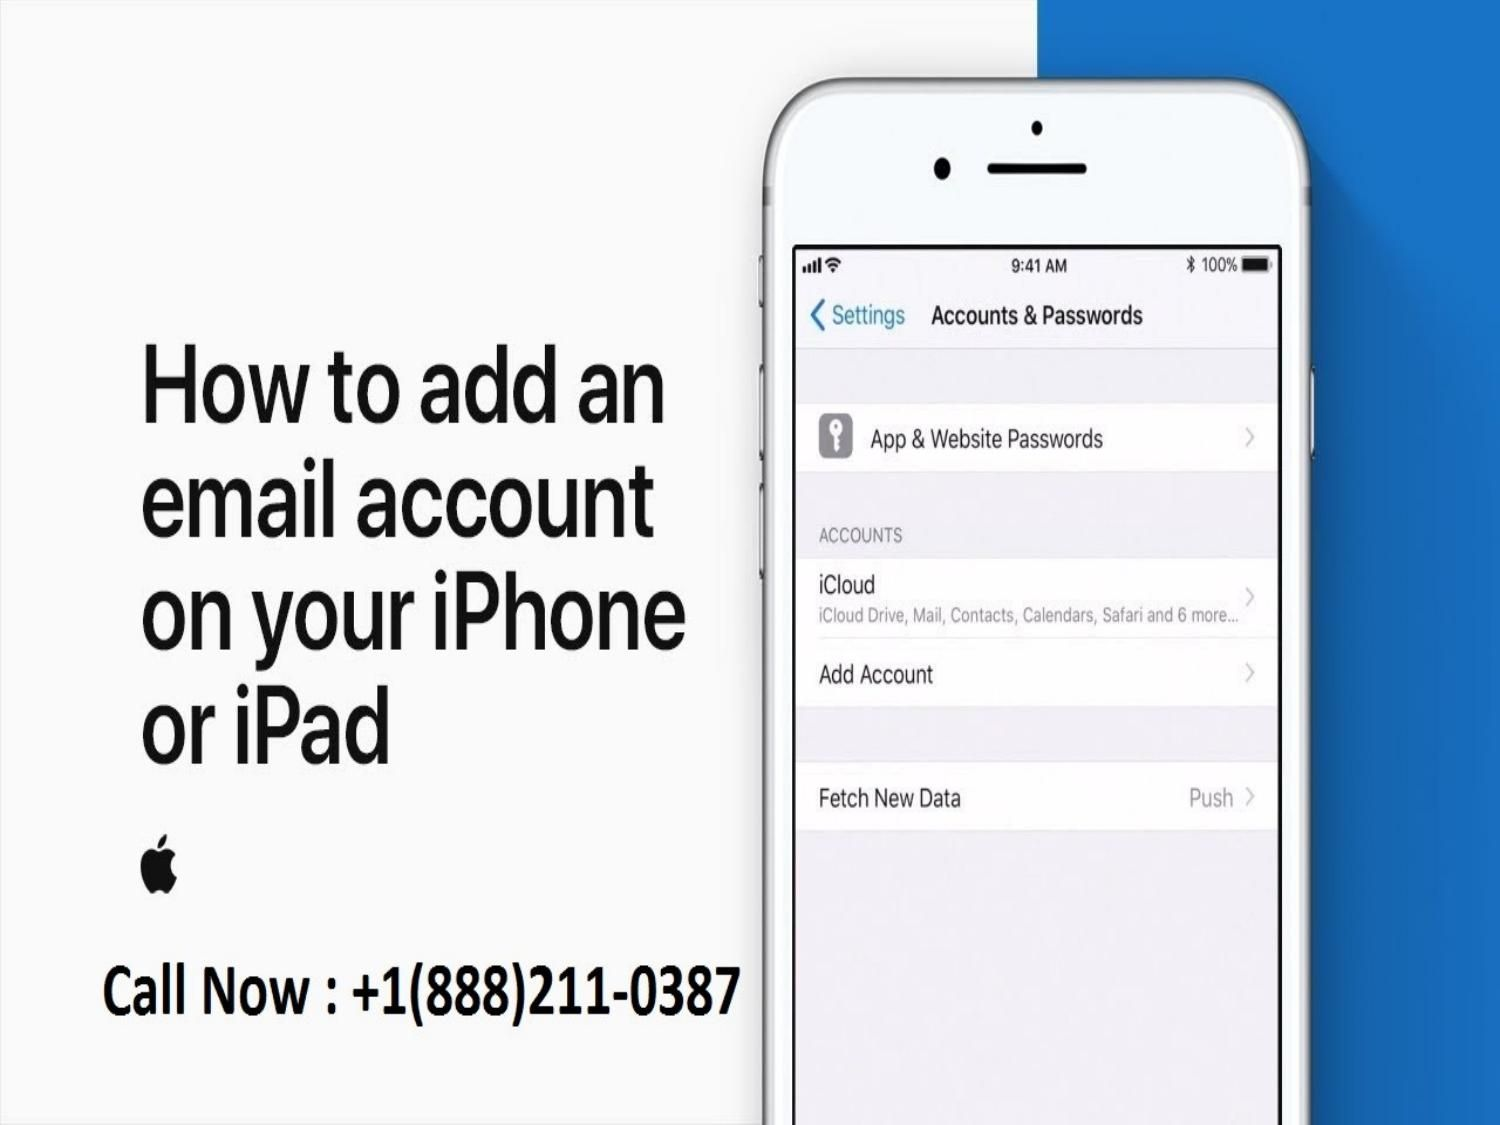 Call +18882110387 Apple Email Support Phone Number for